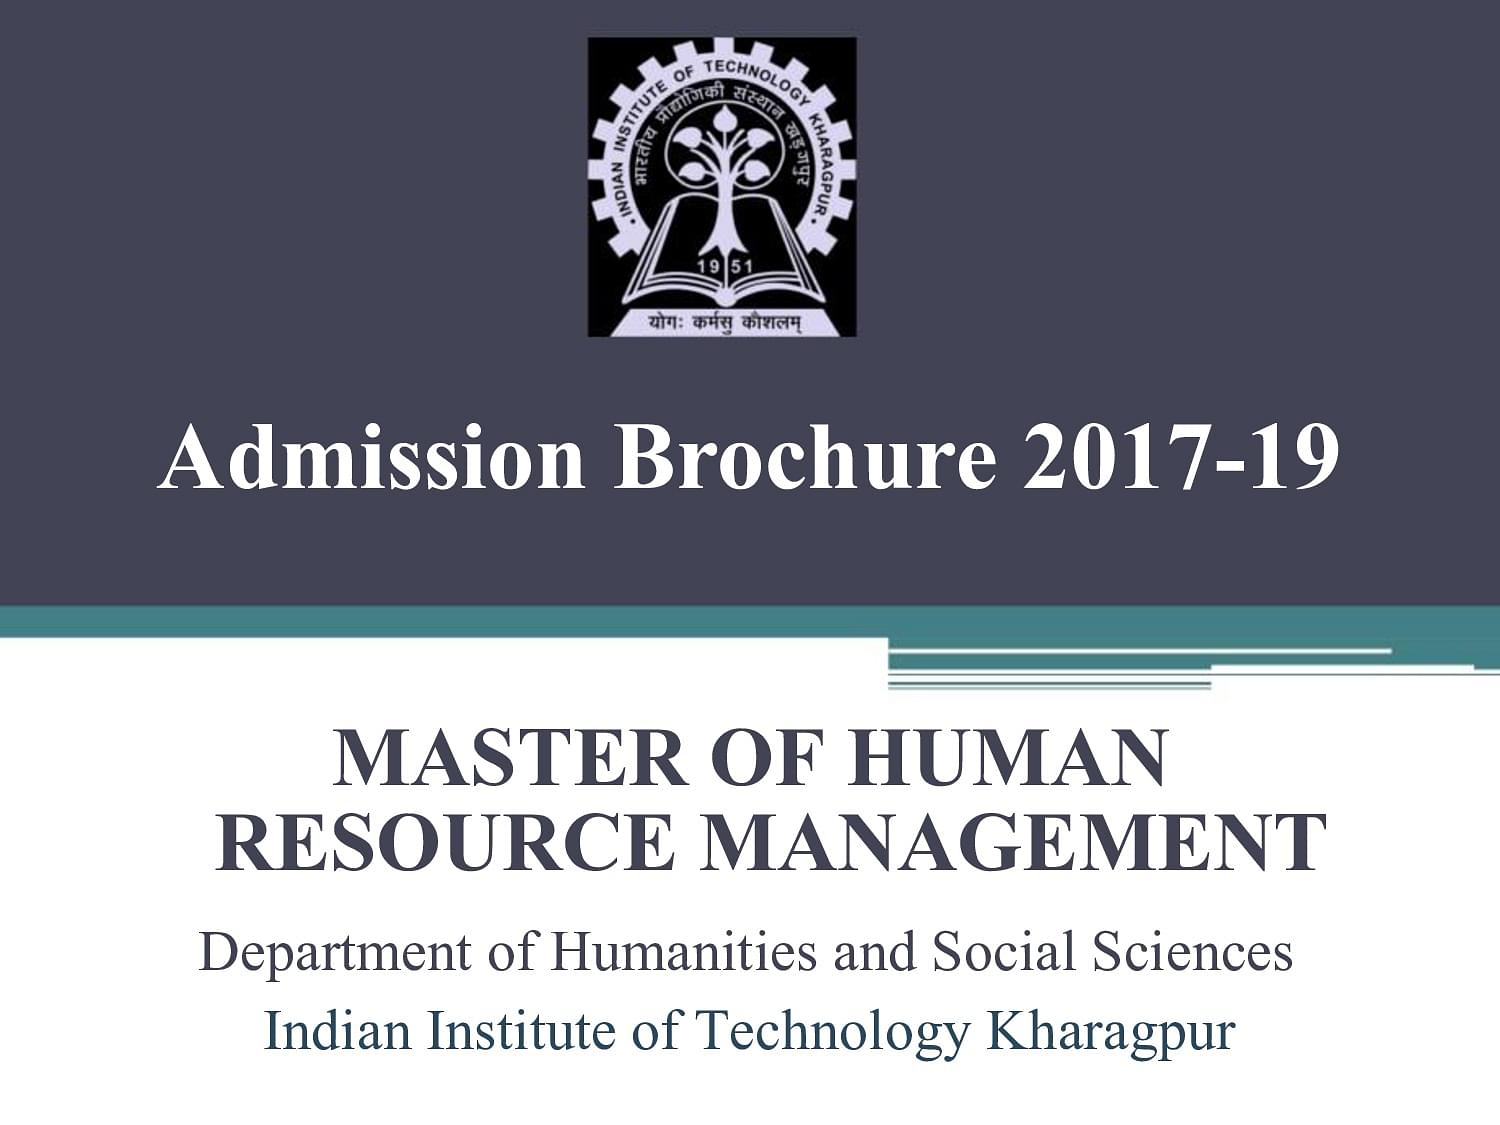 Indian institute of technology kharagpur - Indian Institute Of Technology Iit Kharagpur Admission Brochure 2017 19 Image